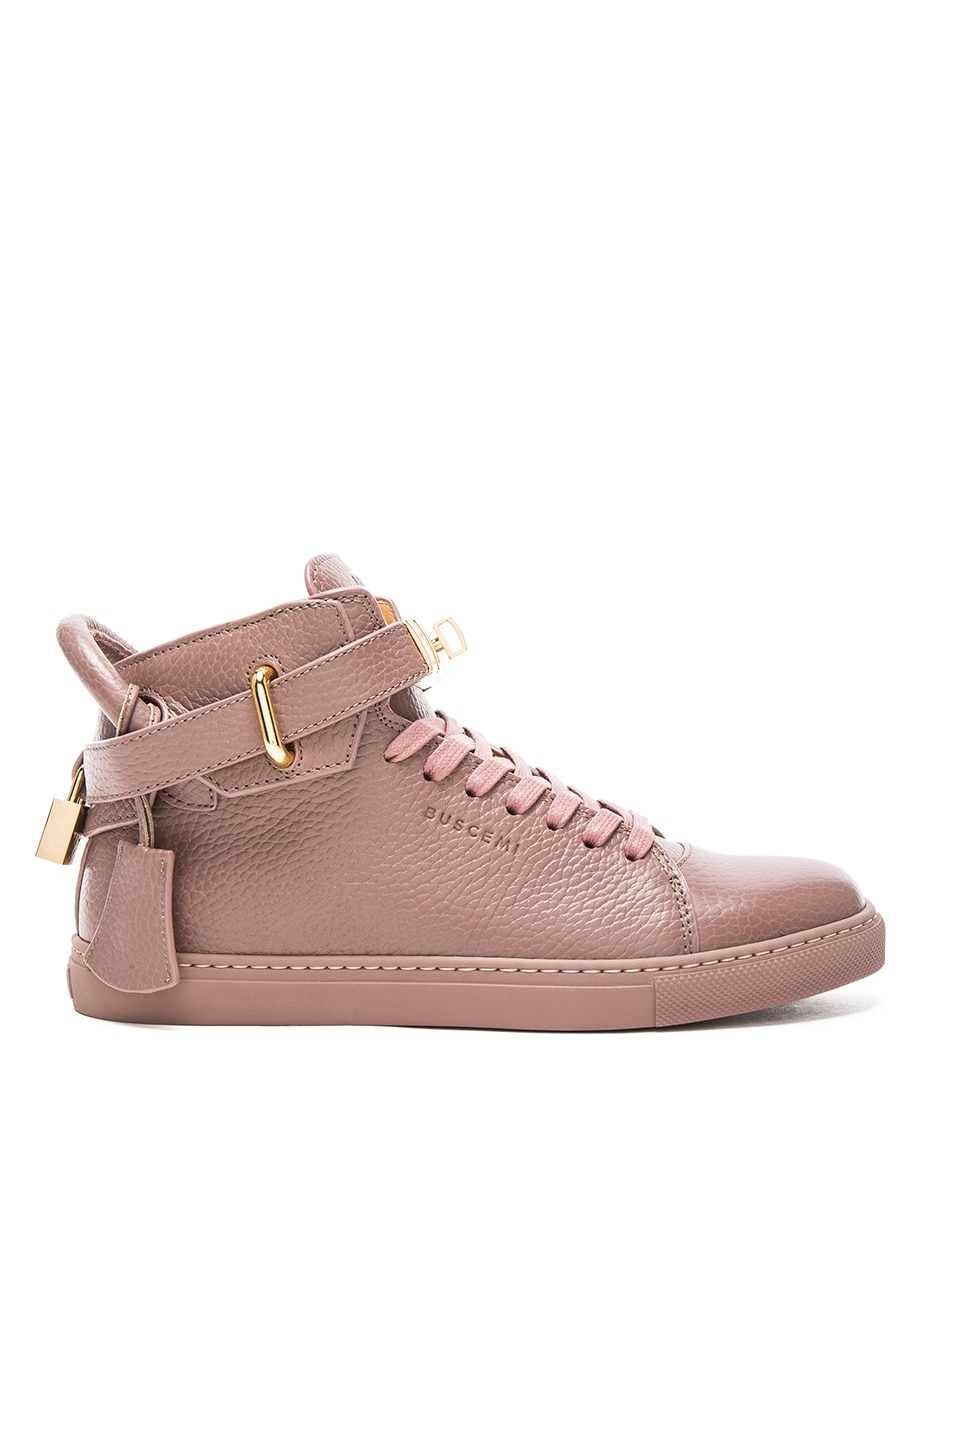 BUSCEMI 100mm Flat Sneakers